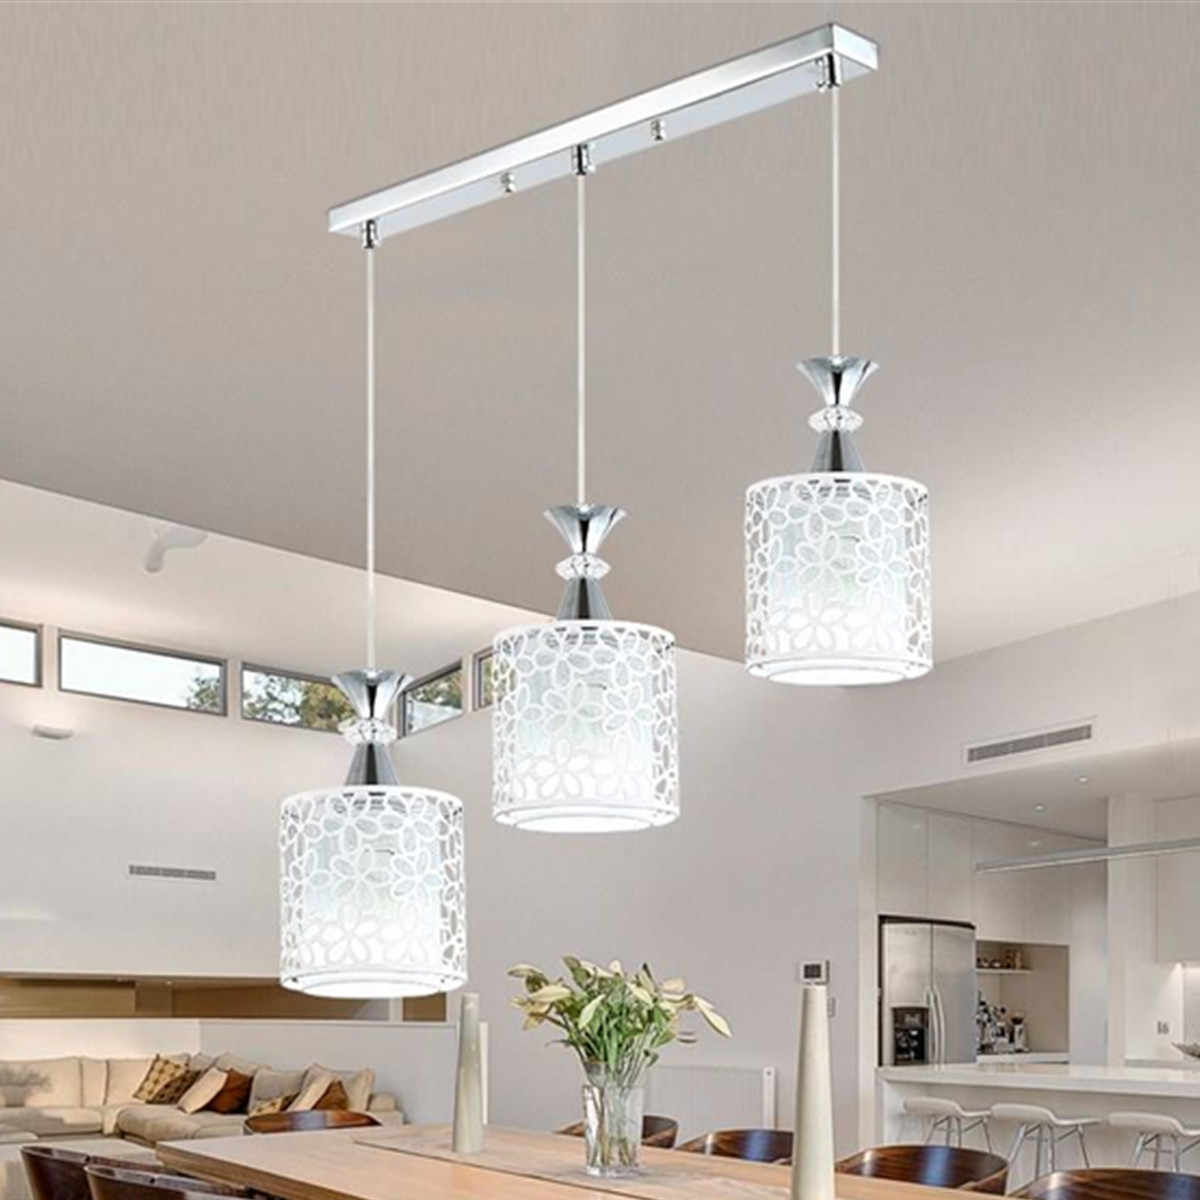 Modern Crystal Ceiling Lamps LED Lamps Living Room Dining Room Glass Ceiling lamp led lustre light ceiling lights